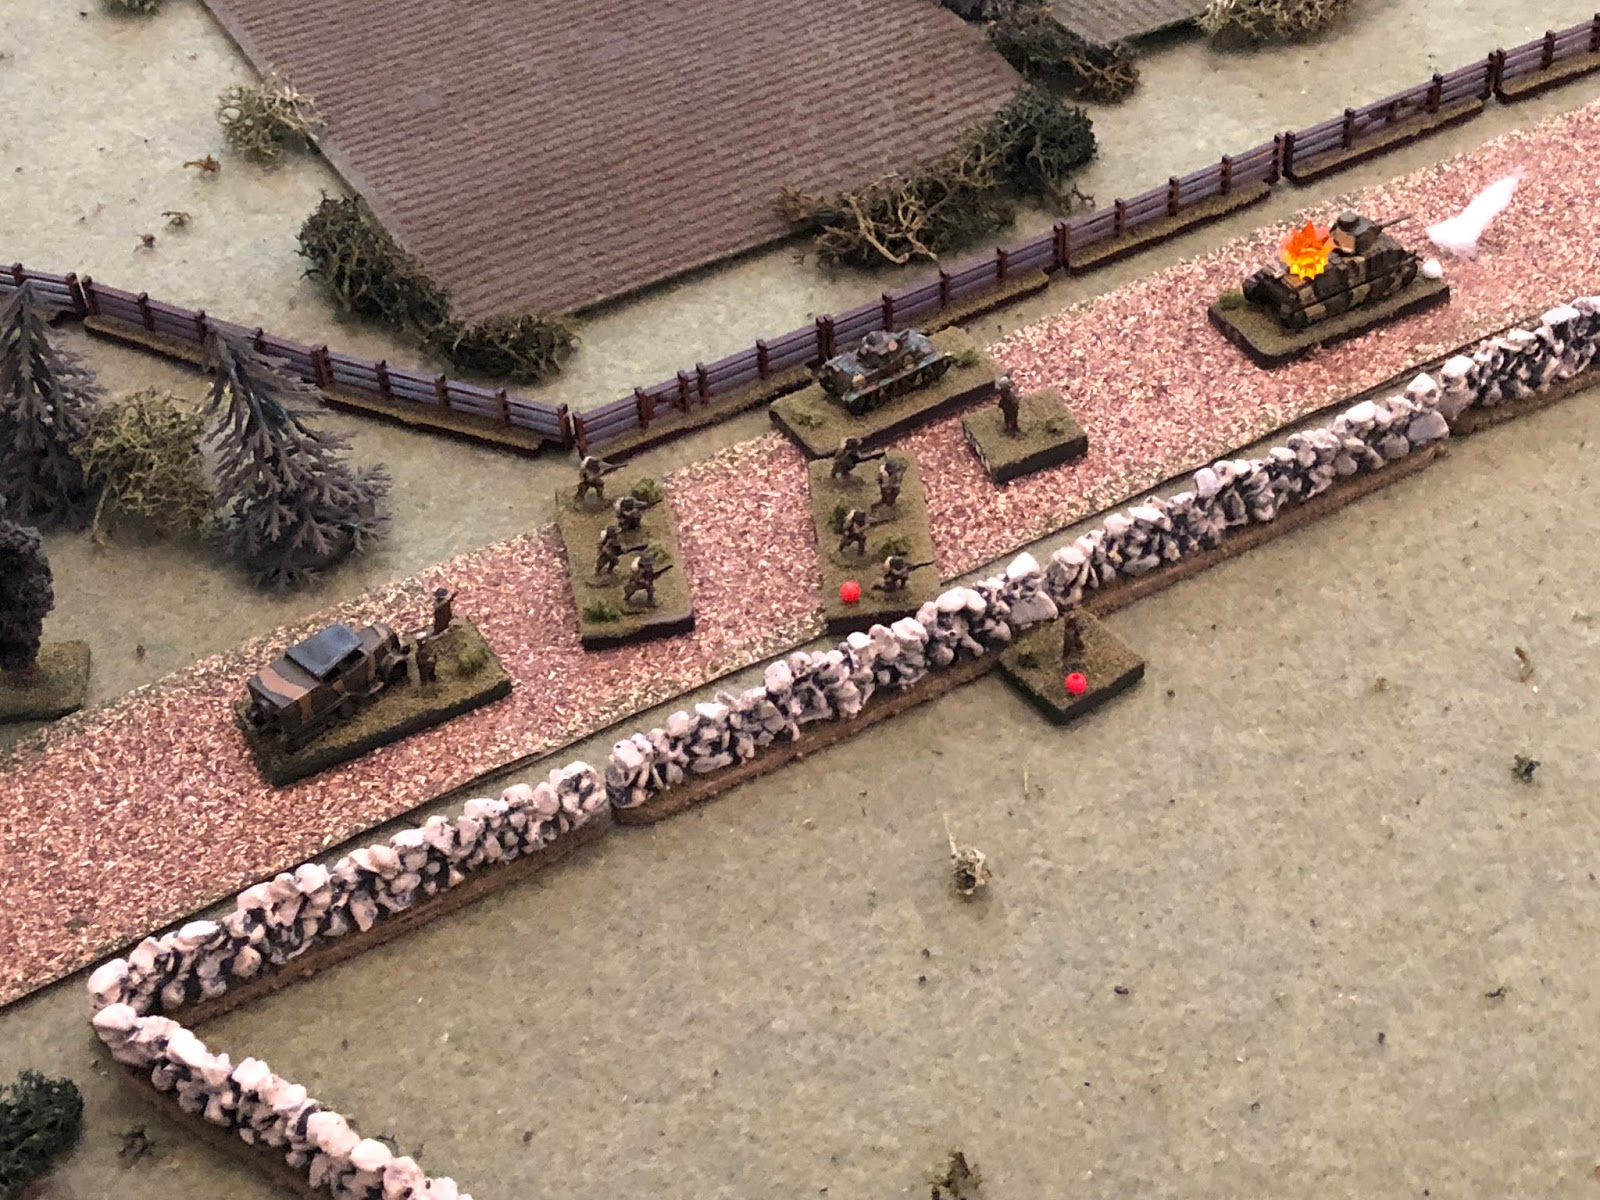 The French H39 light tank begins moving east down main street, skirting left (center) around 2nd Platoon.